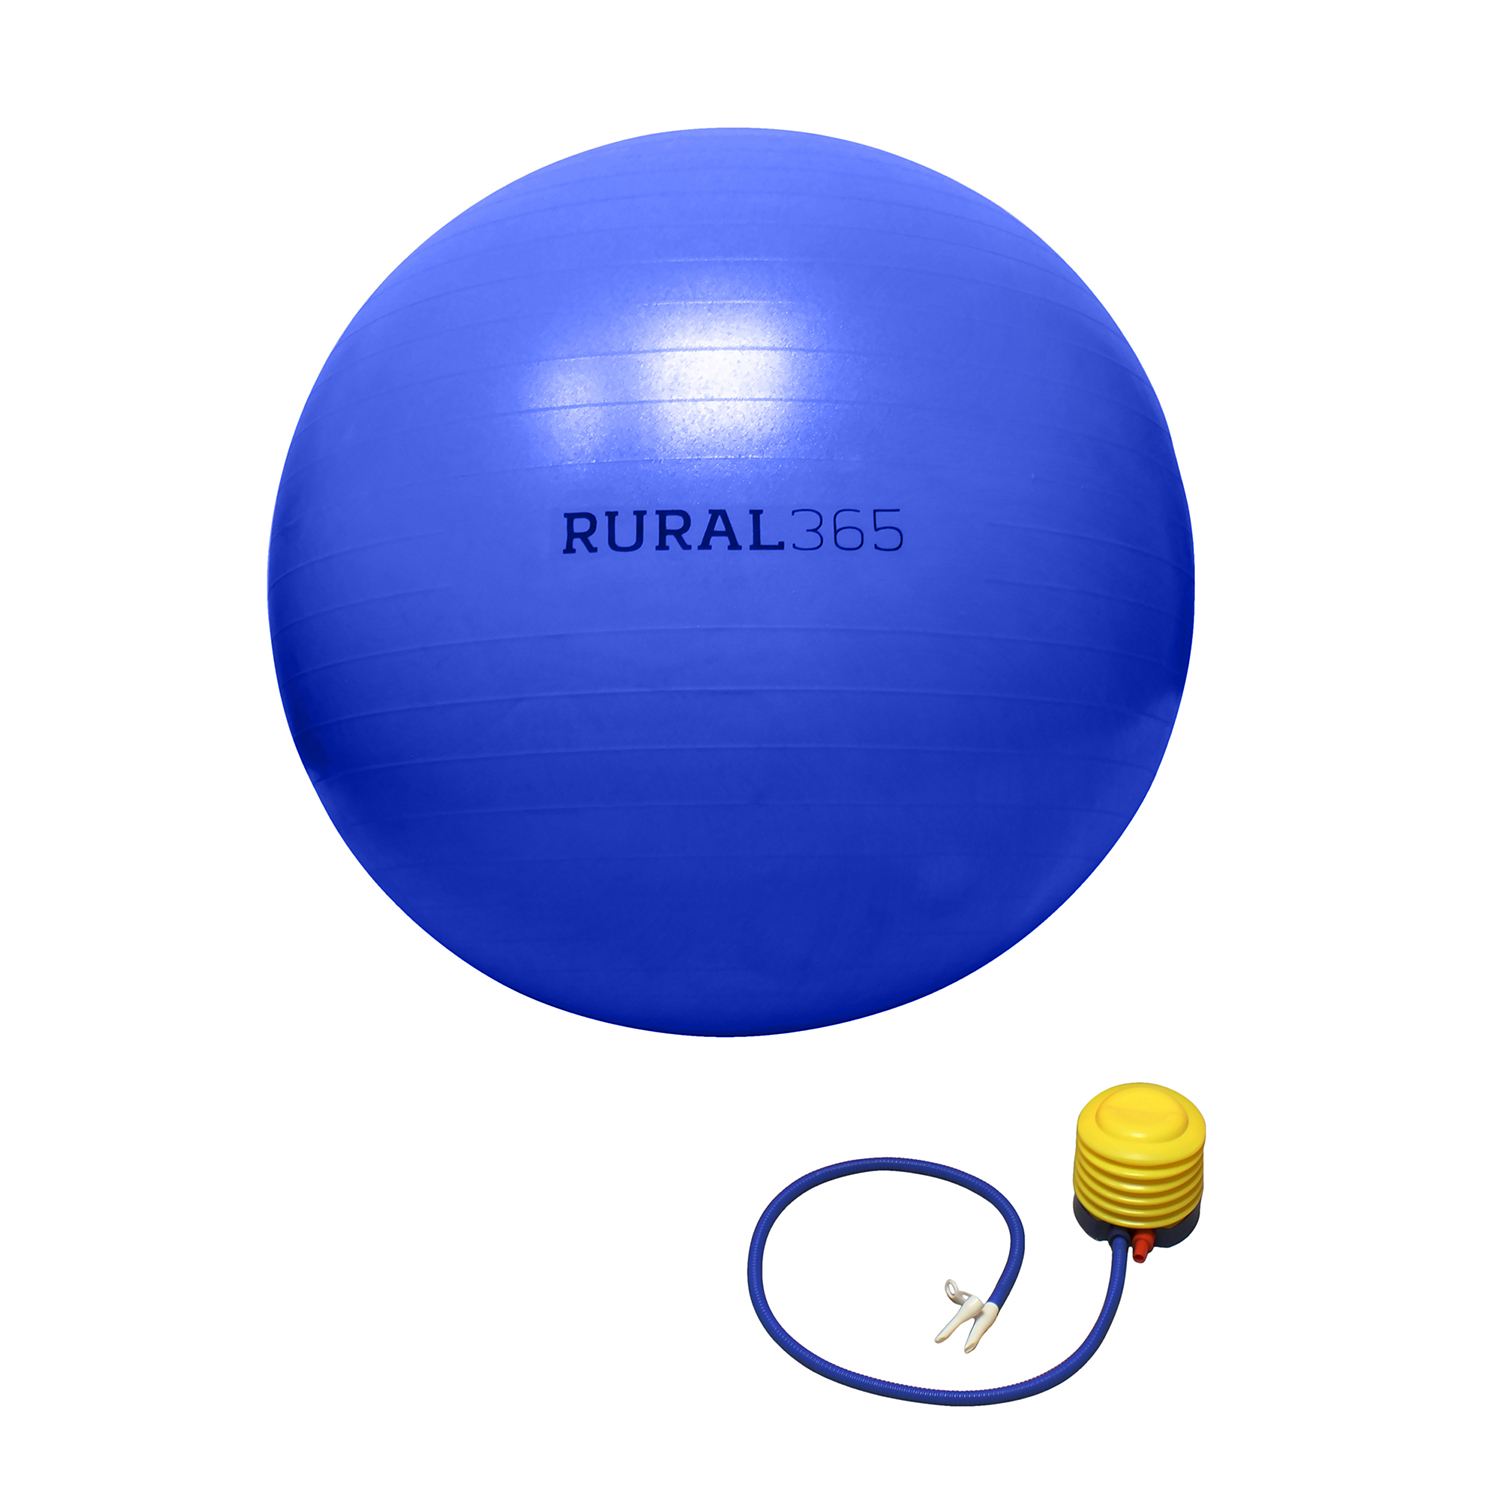 Rural365-Large-Horse-Ball-Toy-Anti-Burst-Giant-Horse-Ball-with-Hand-Pump thumbnail 8